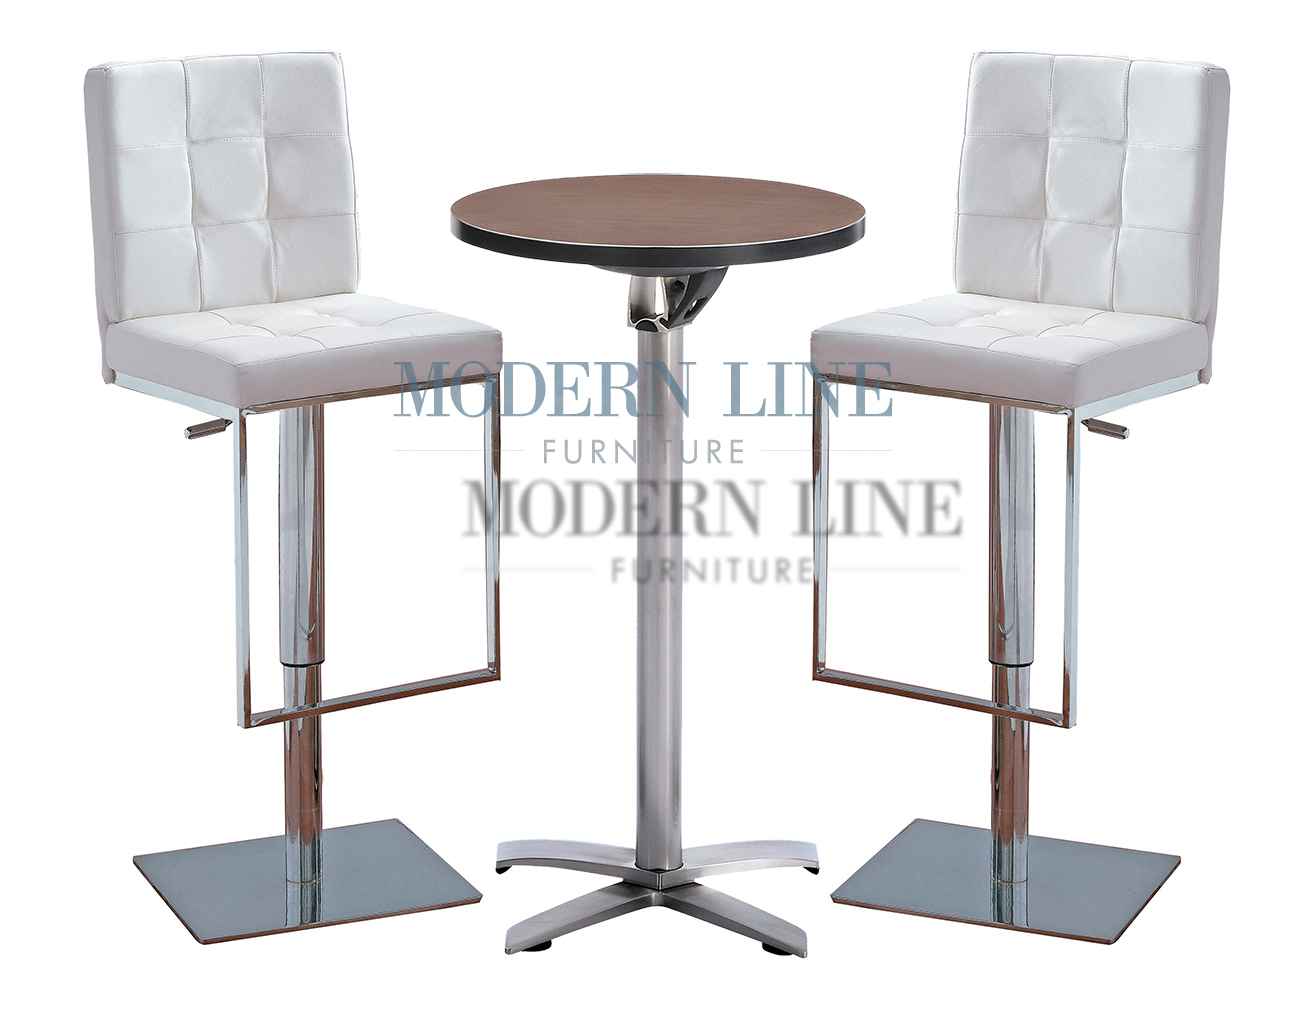 Modern Line Furniture - Commercial Furniture - Custom Made Furniture ...